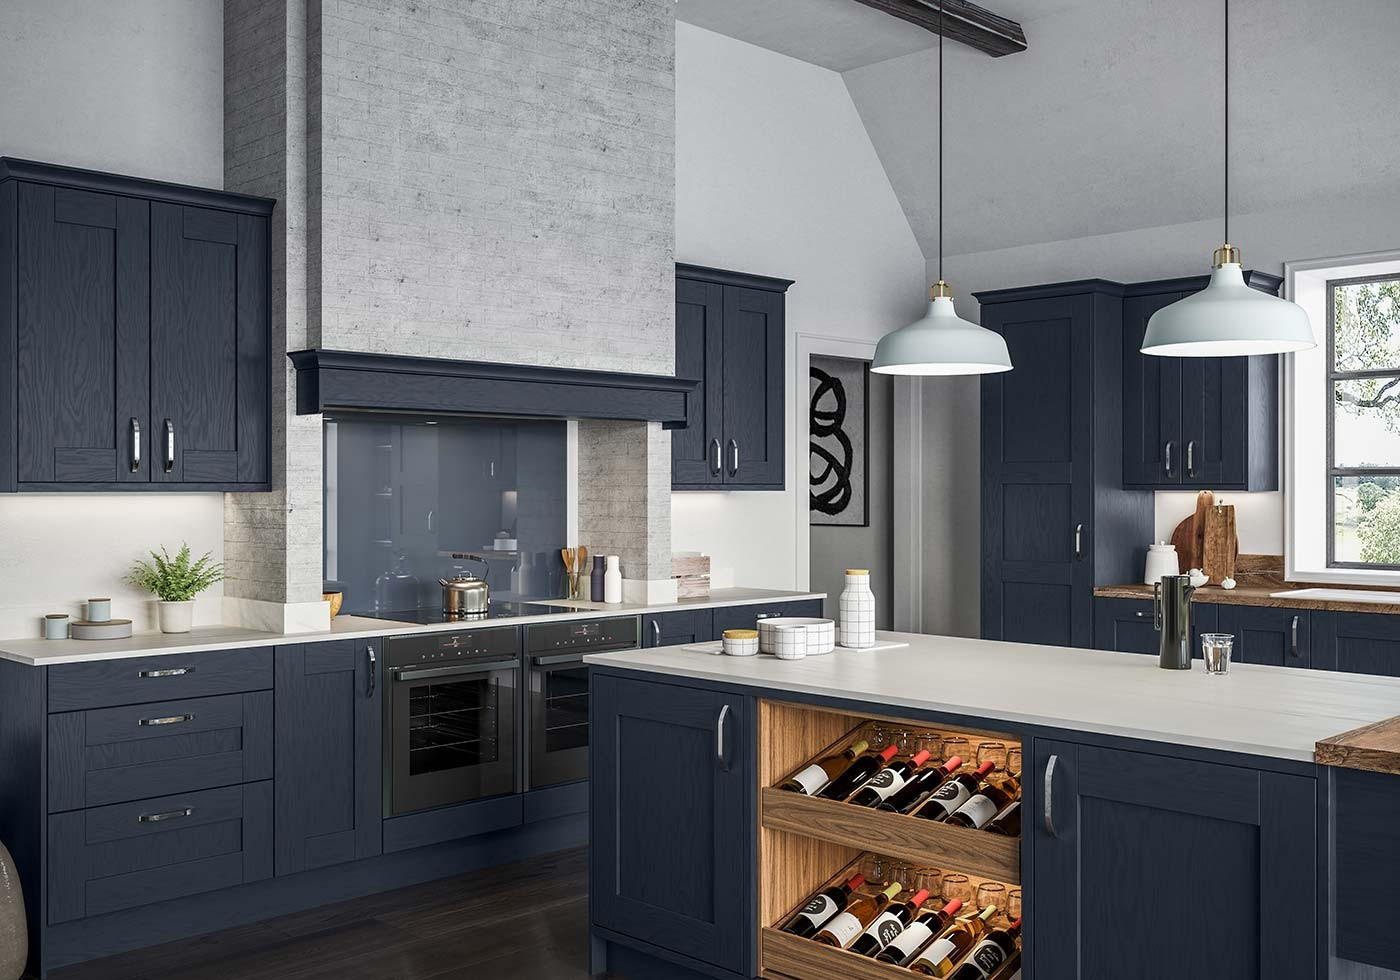 mc-dark-blue-shaker-kitchen.jpg